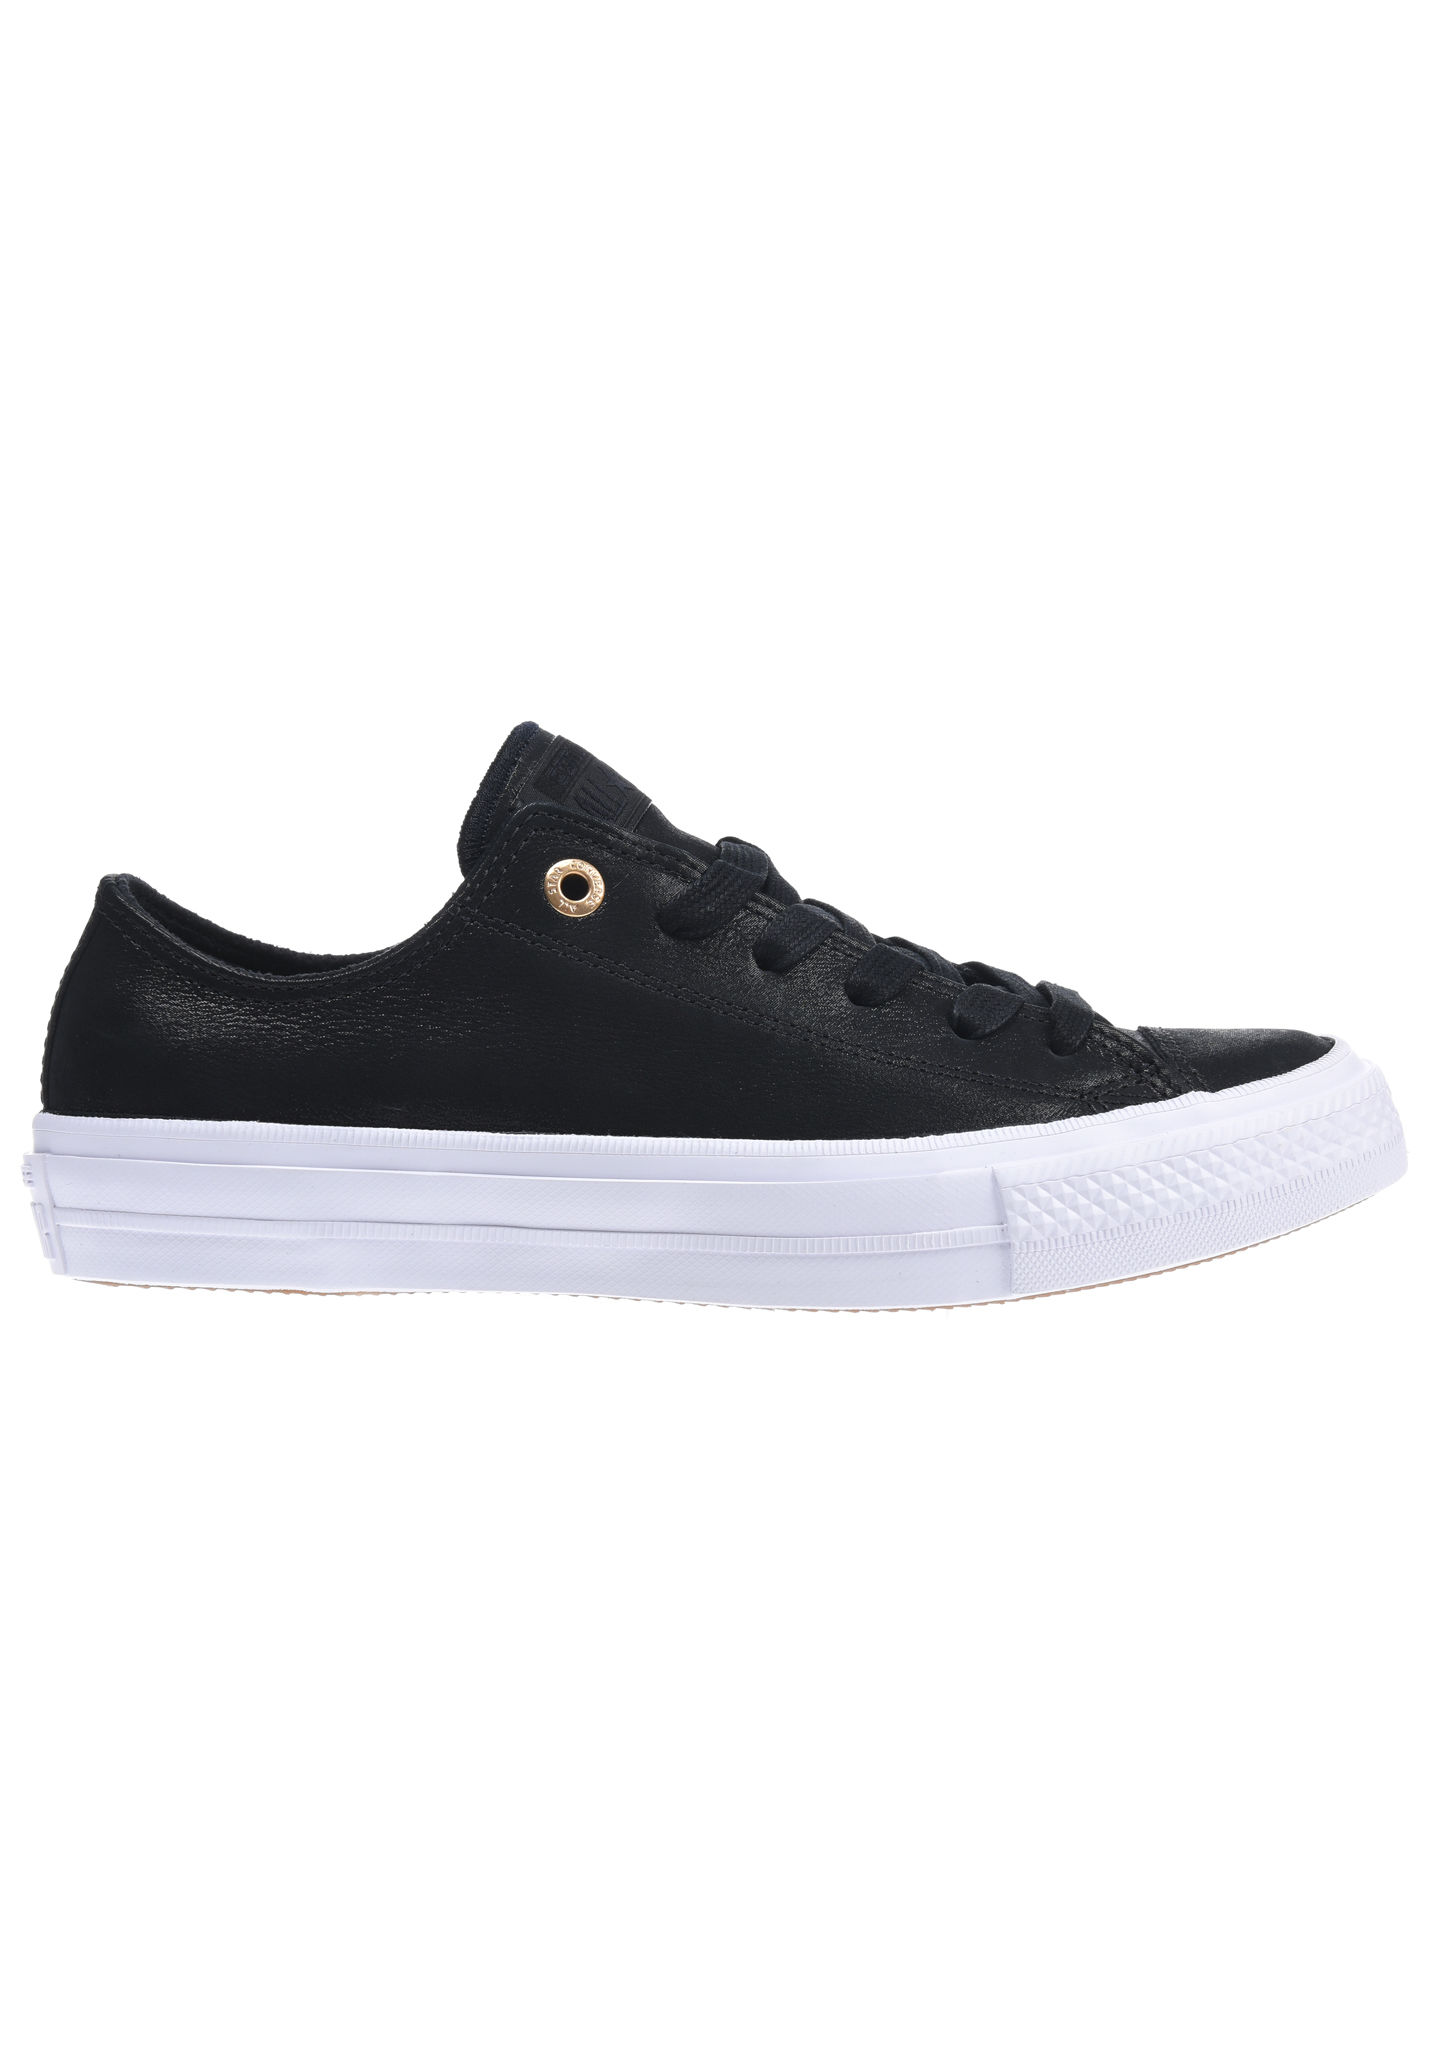 d3a94451b0b1 Converse Chuck Taylor All Star II Ox - Sneakers for Women - Black - Planet  Sports